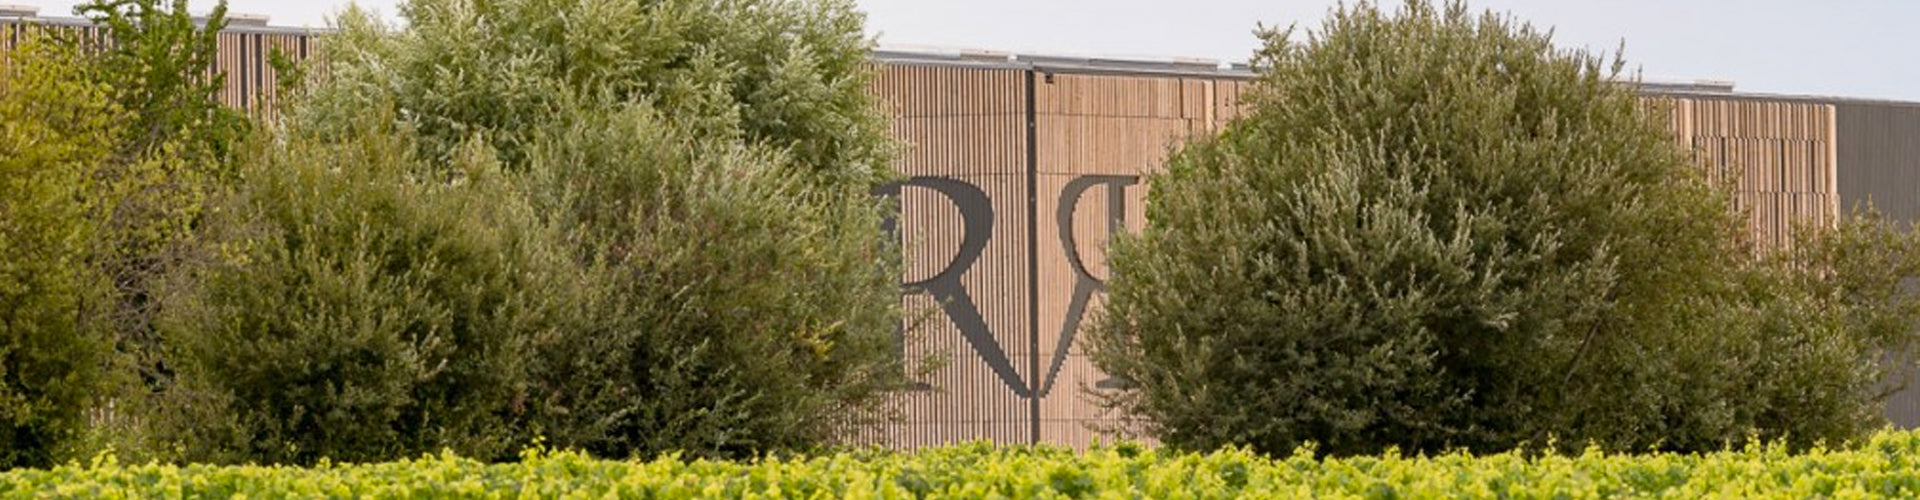 Ronan by Clinet Bordeaux Winery